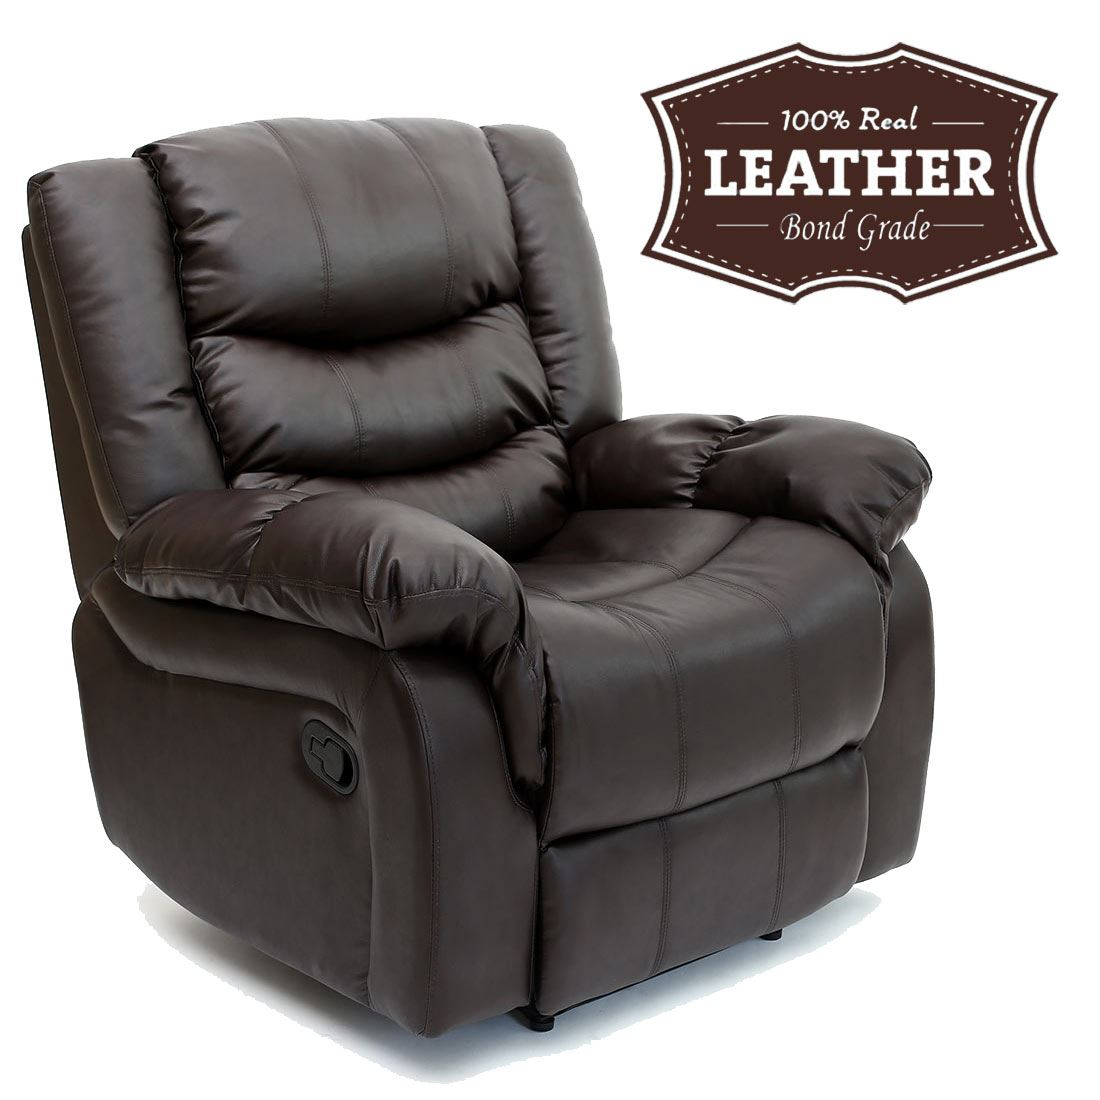 Sofa Bed Ebay Sydney: SEATTLE LEATHER RECLINER ARMCHAIR SOFA HOME LOUNGE CHAIR